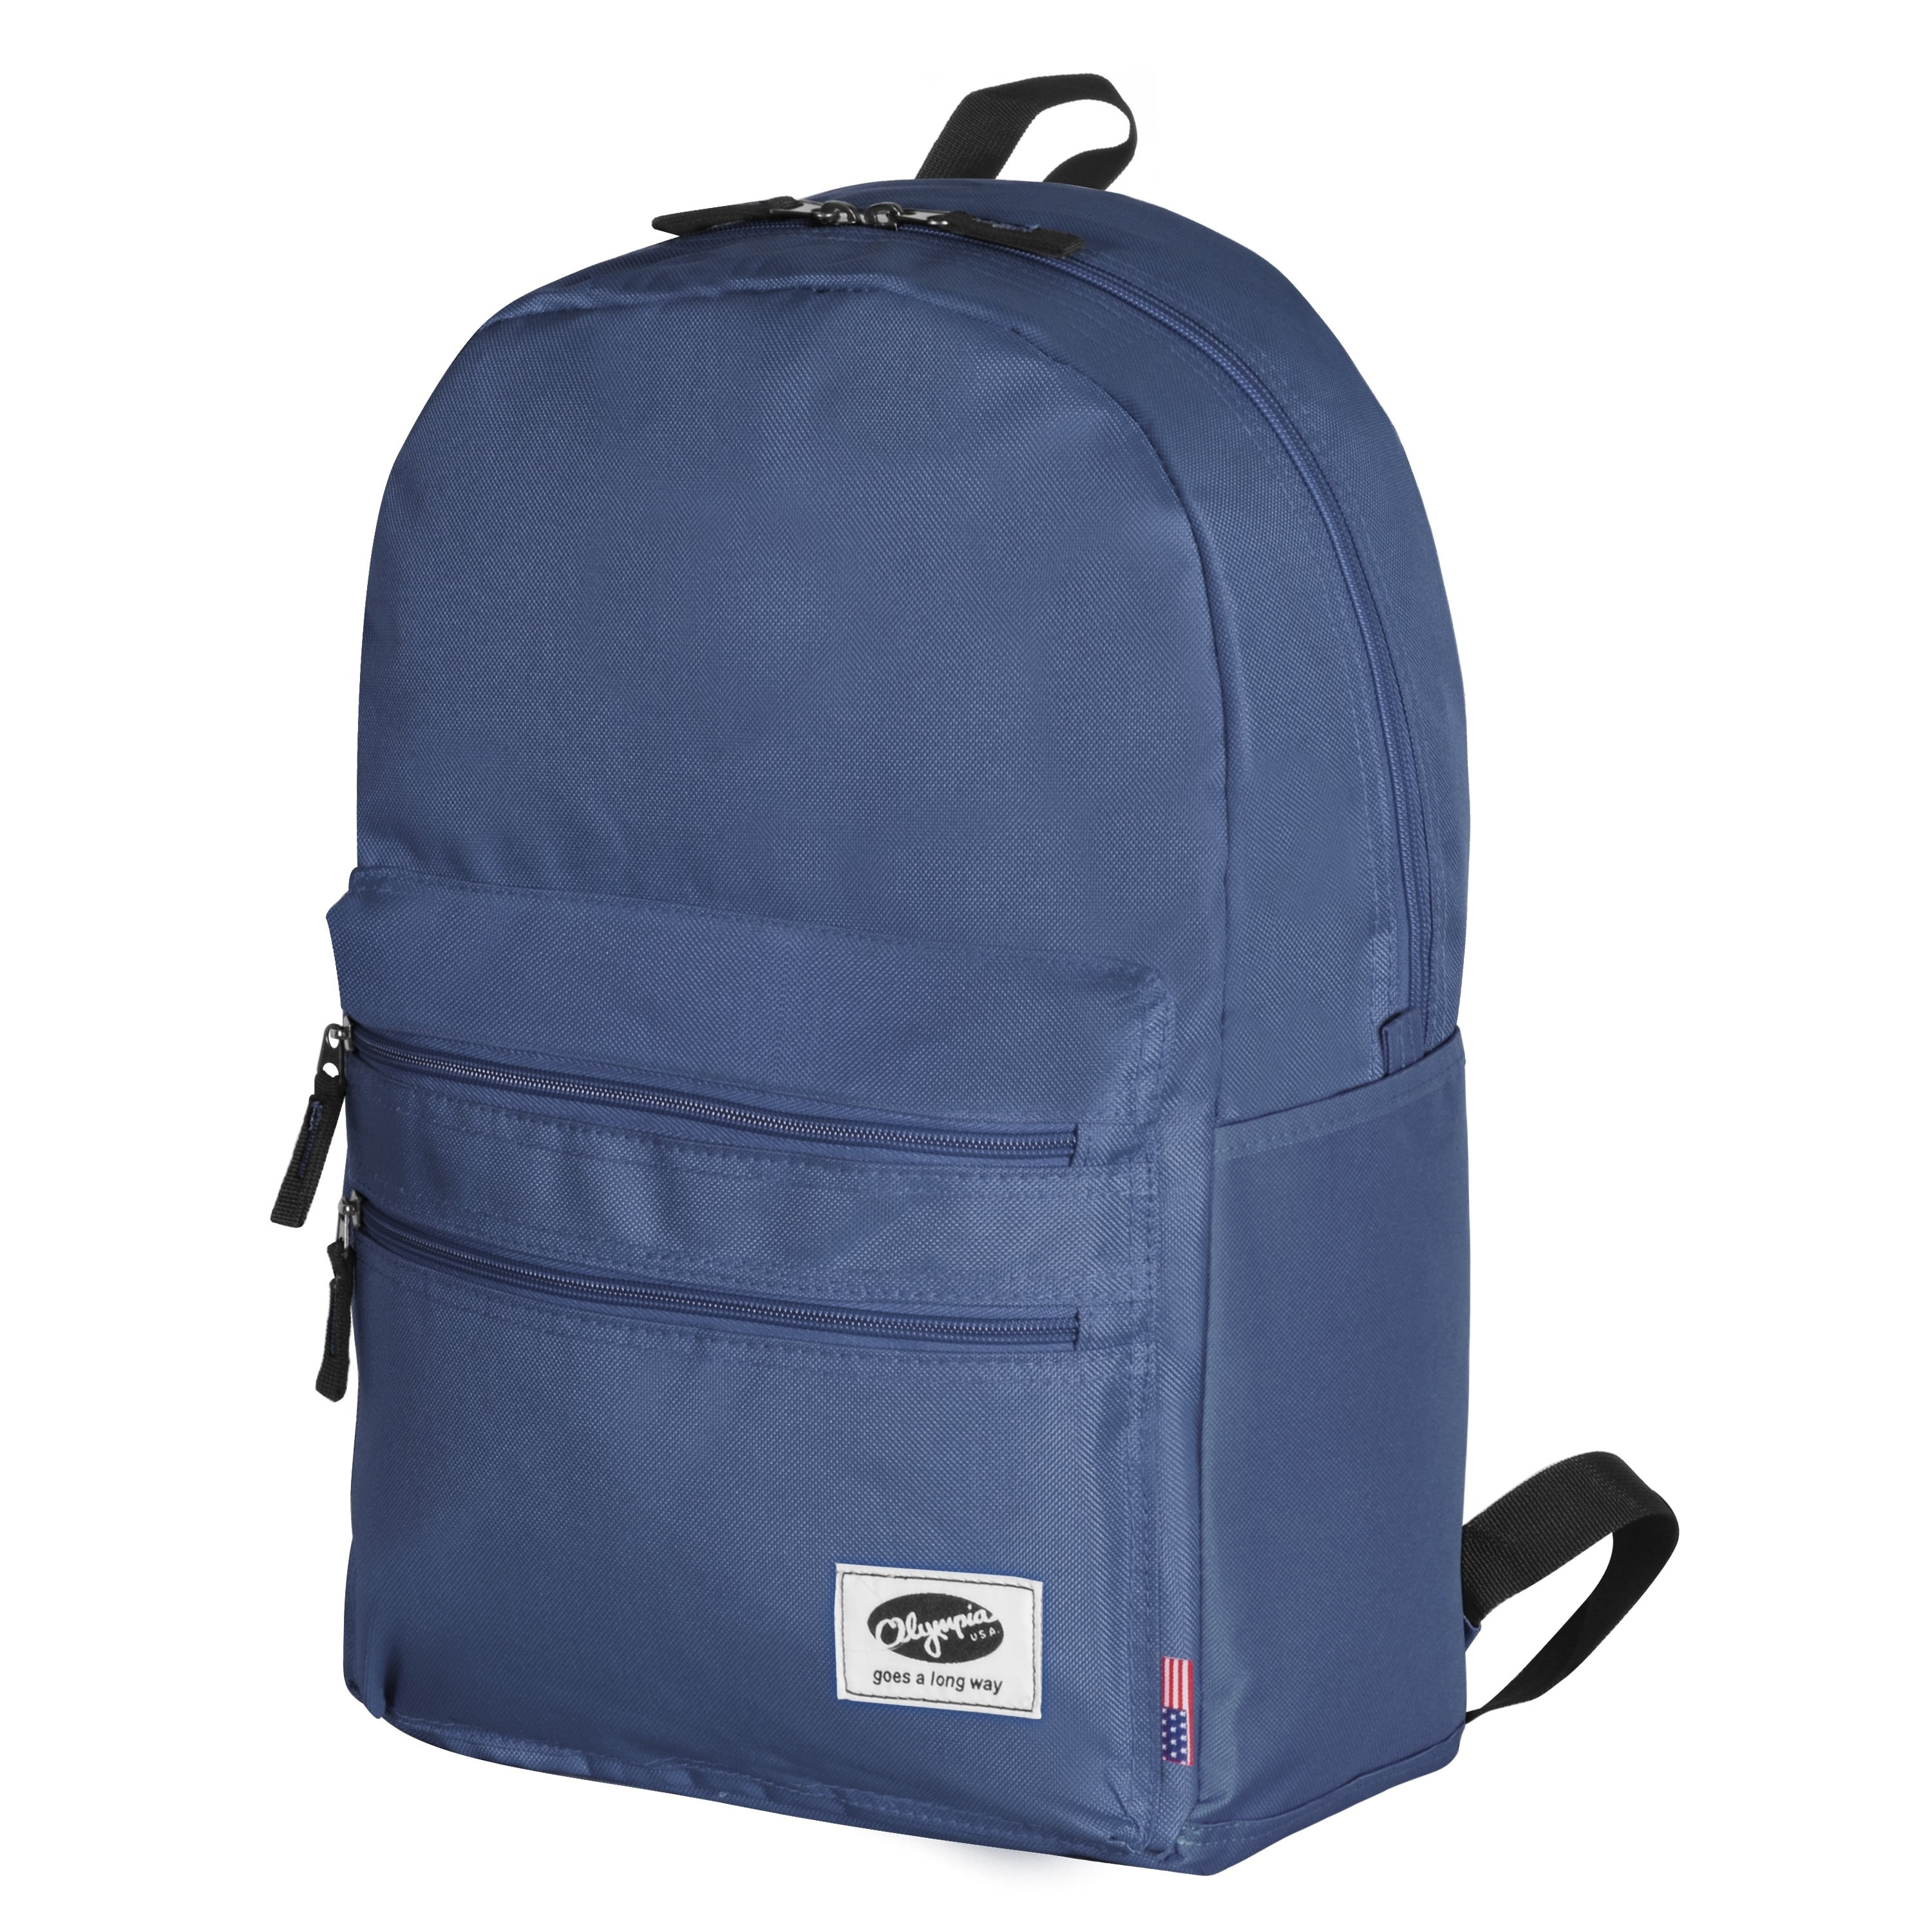 Shop Olympia Princeton 18-inch Laptop Backpack - Free Shipping On ... eb5a5eea7c010